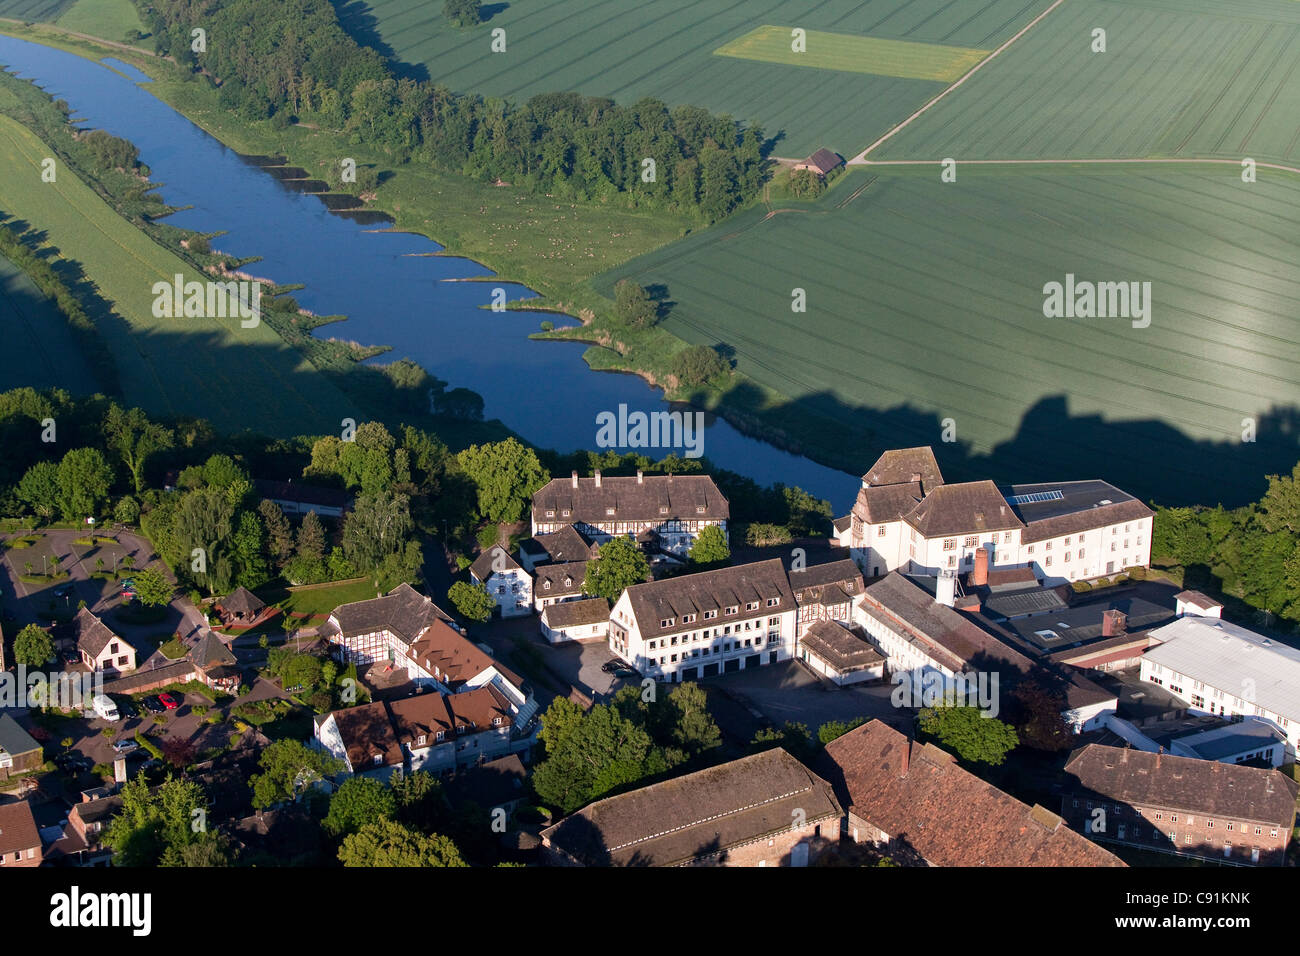 Aerial view of the famous porcelain manufacturer Fuerstenberg, Weser region, Fuerstenberg, Lower Saxony, Germany - Stock Image